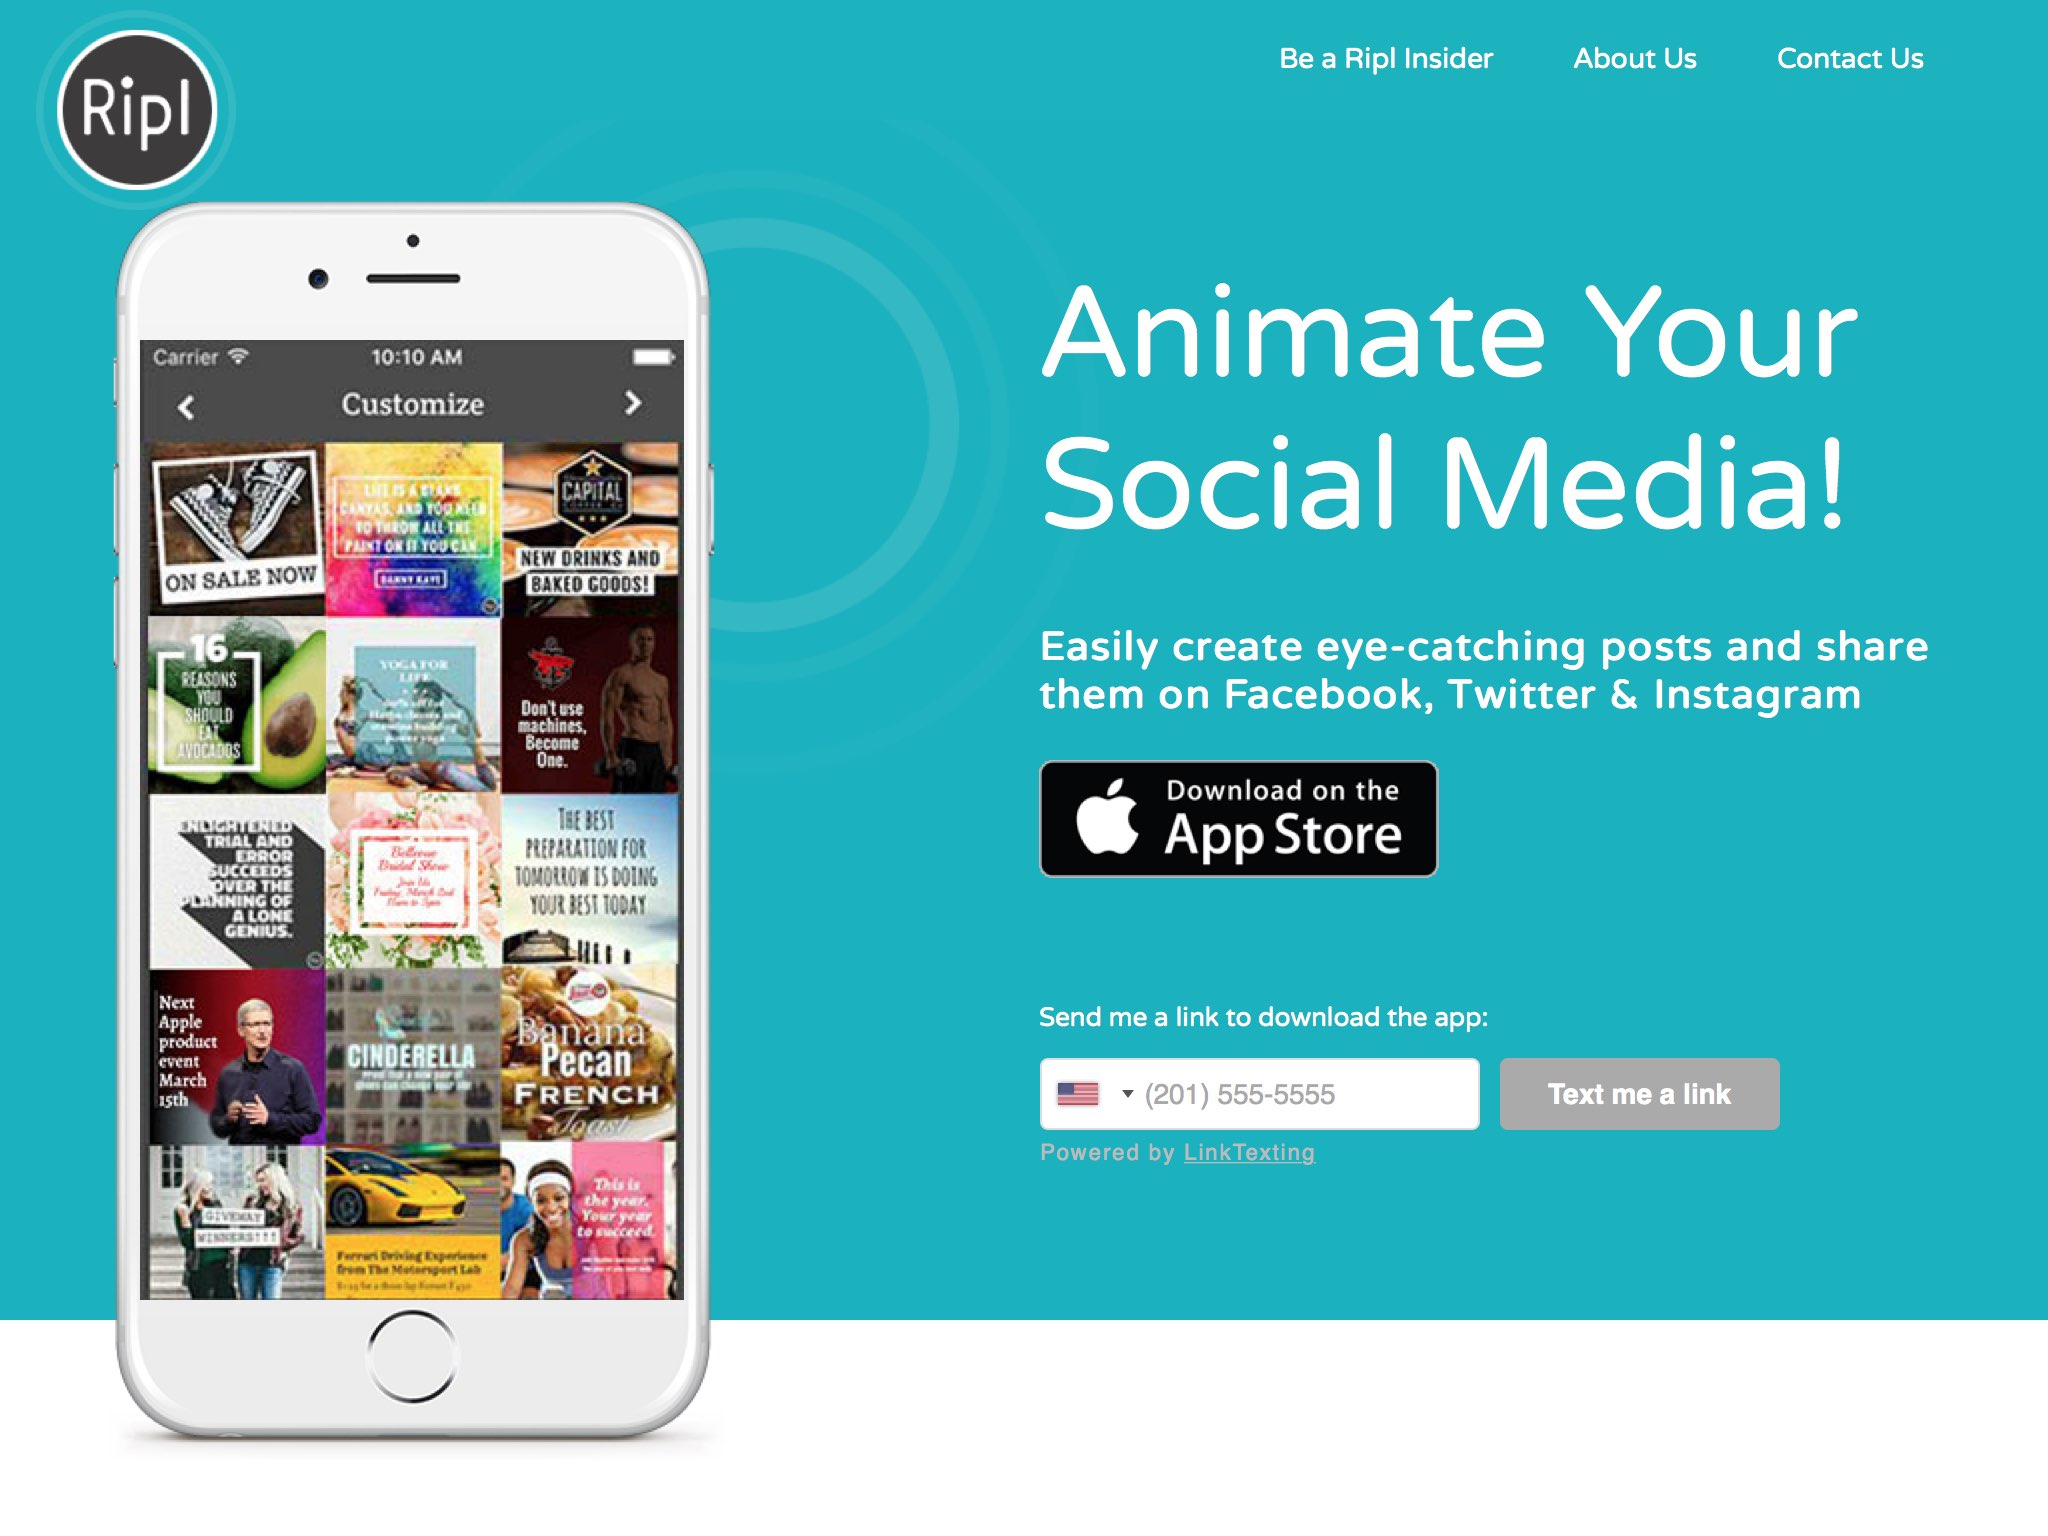 An app to easily create eye-catching posts that help you or your business stand out on social media.